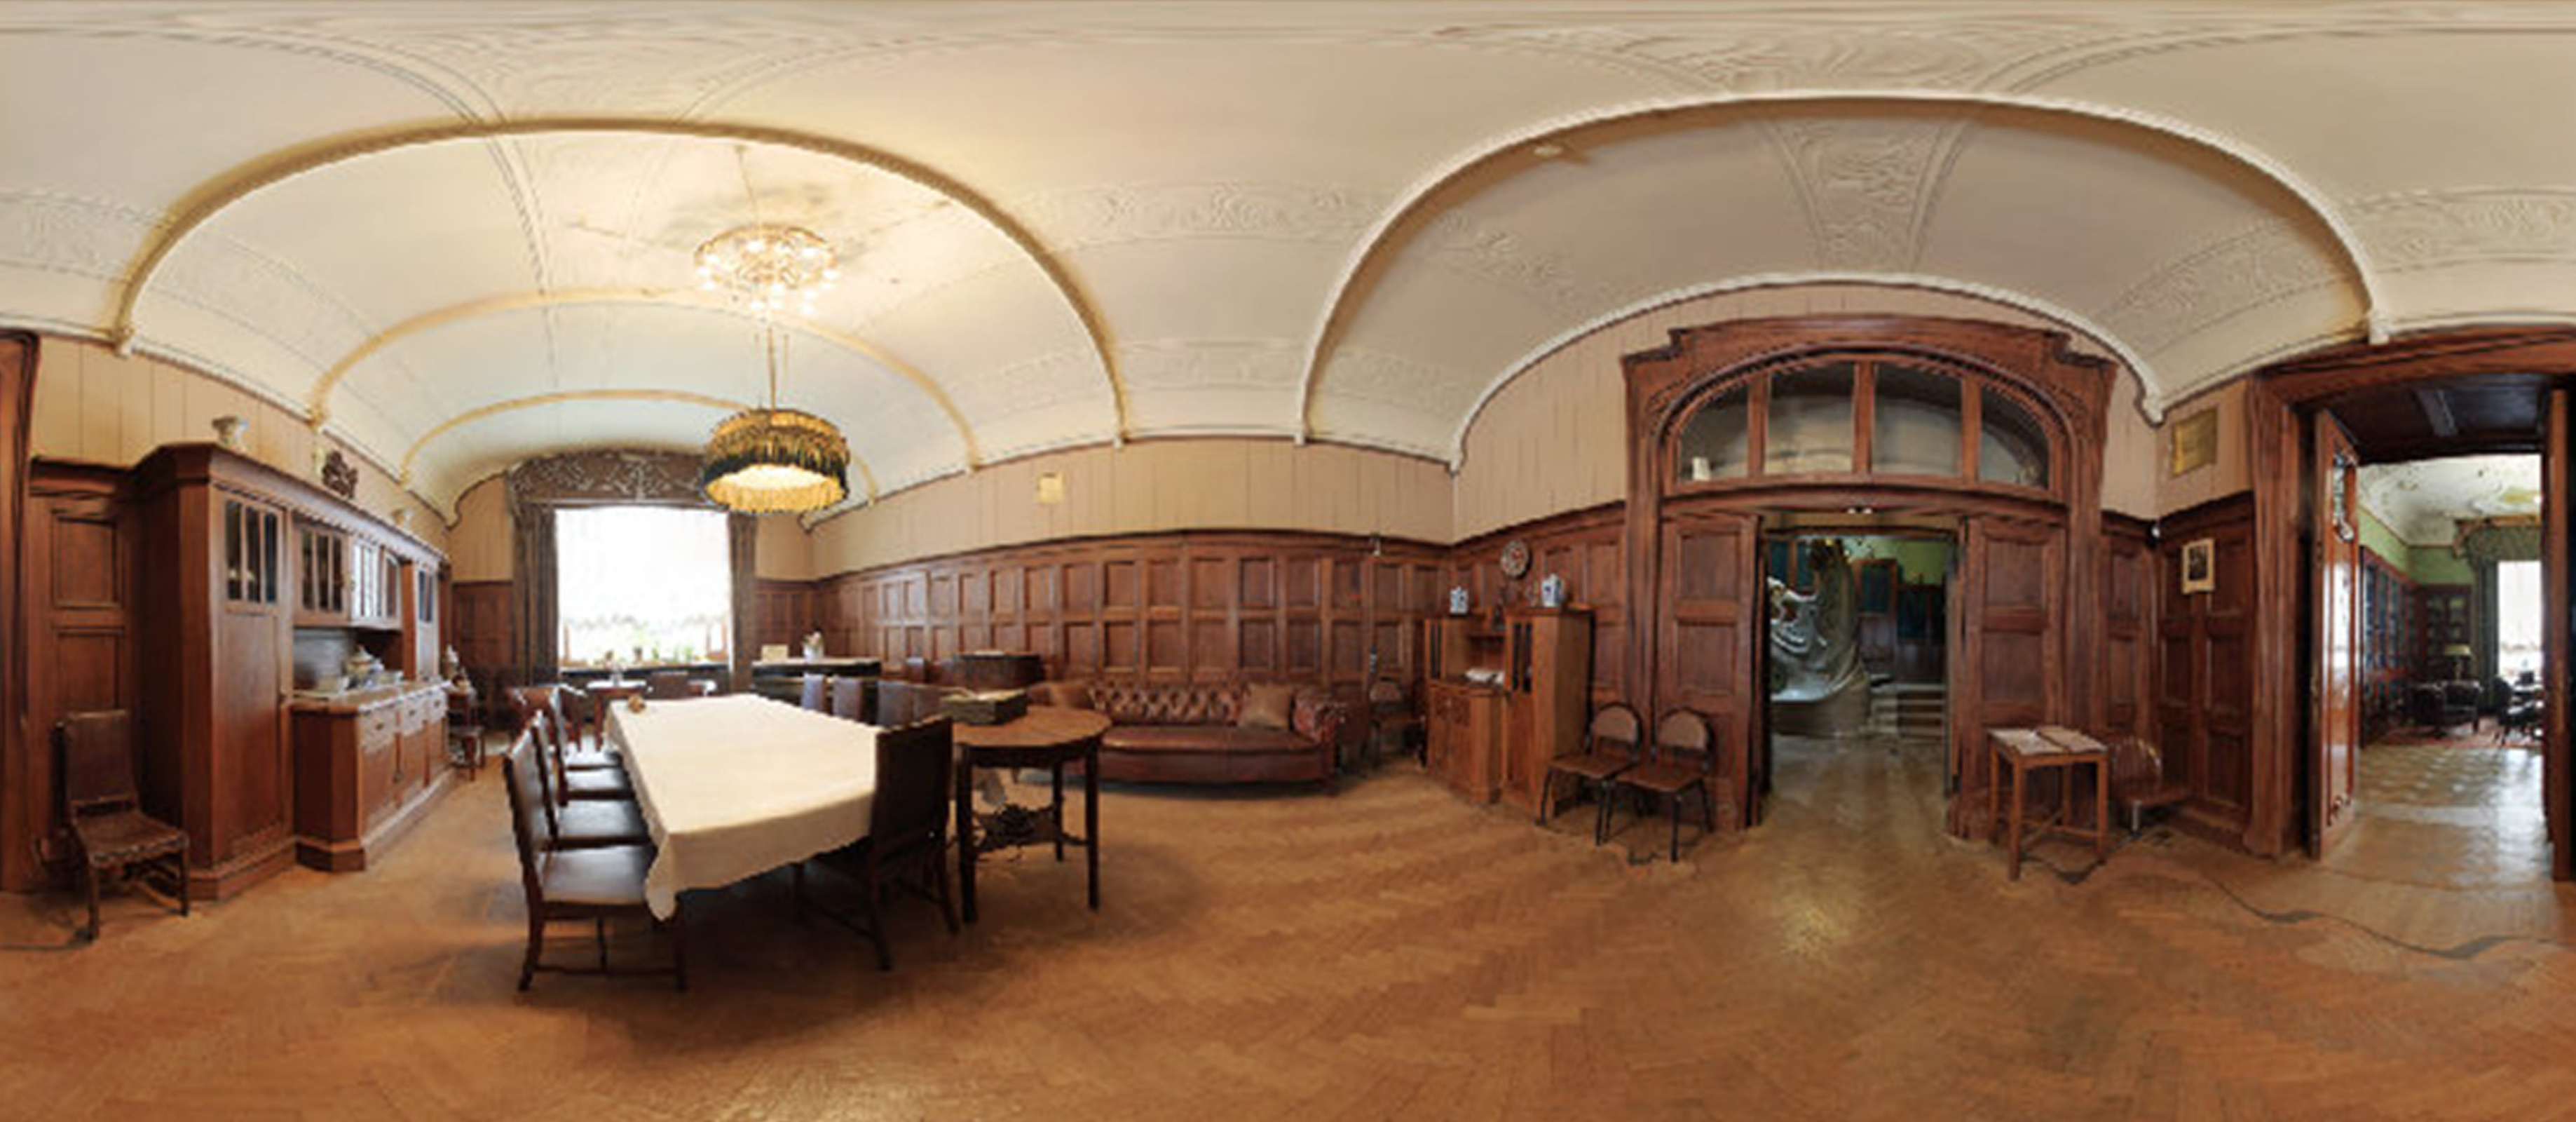 The dining and living room in the Ryabushinsky mansion: this is how it looked in the time of Maxim G